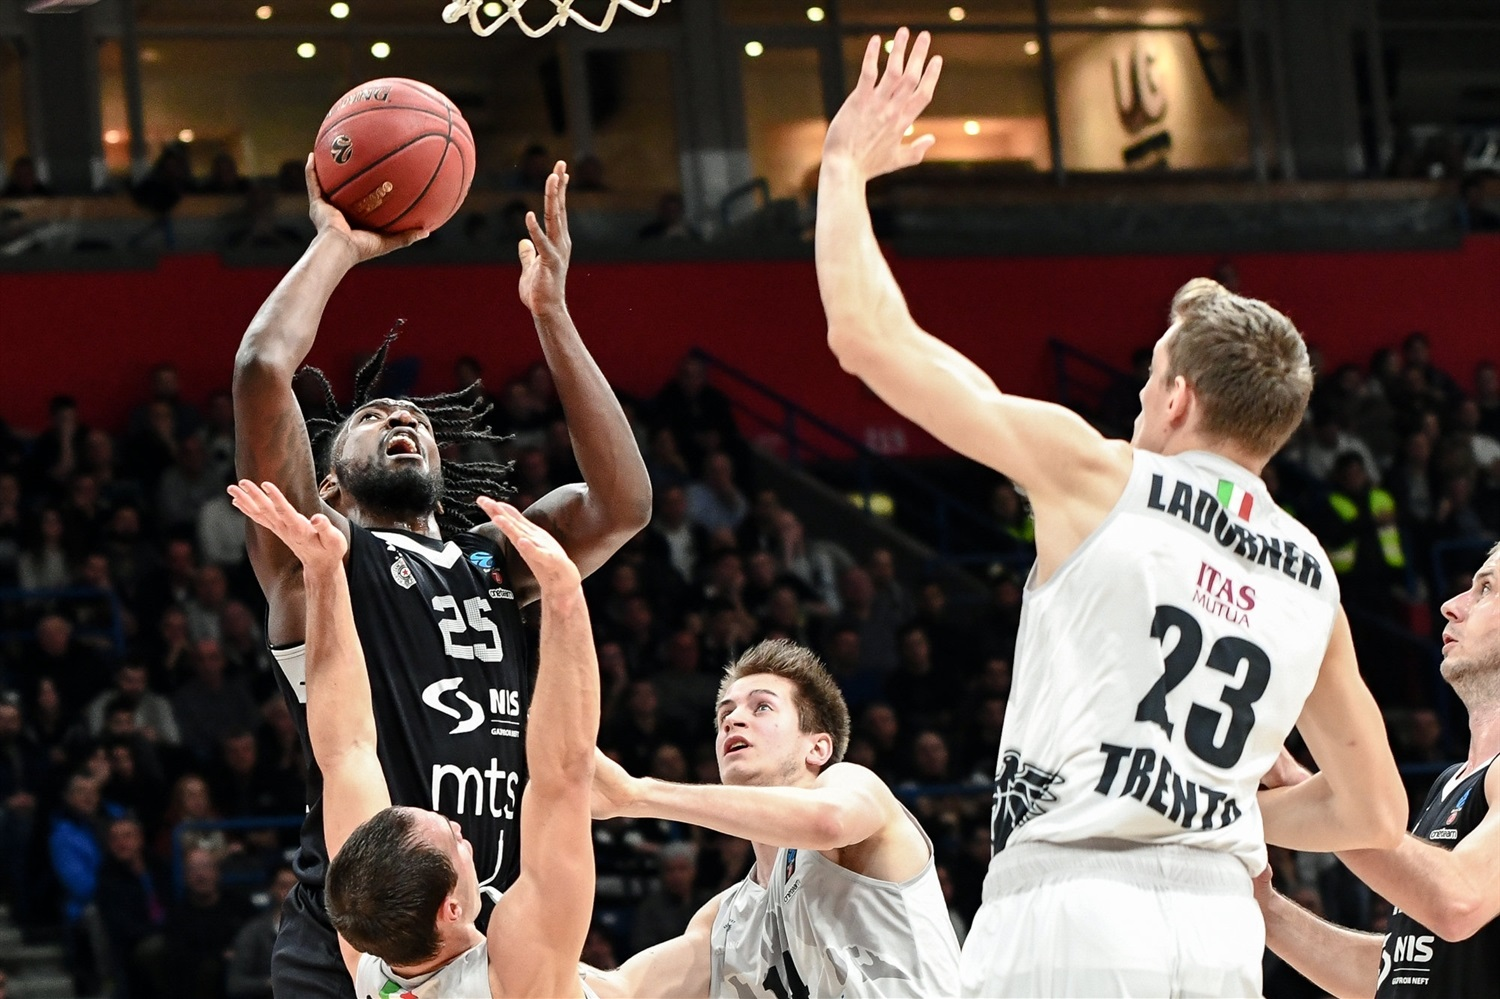 Rashawn Thomas - Partizan NIS Belgrade (photo Dragana Stjepanovic) - EC19